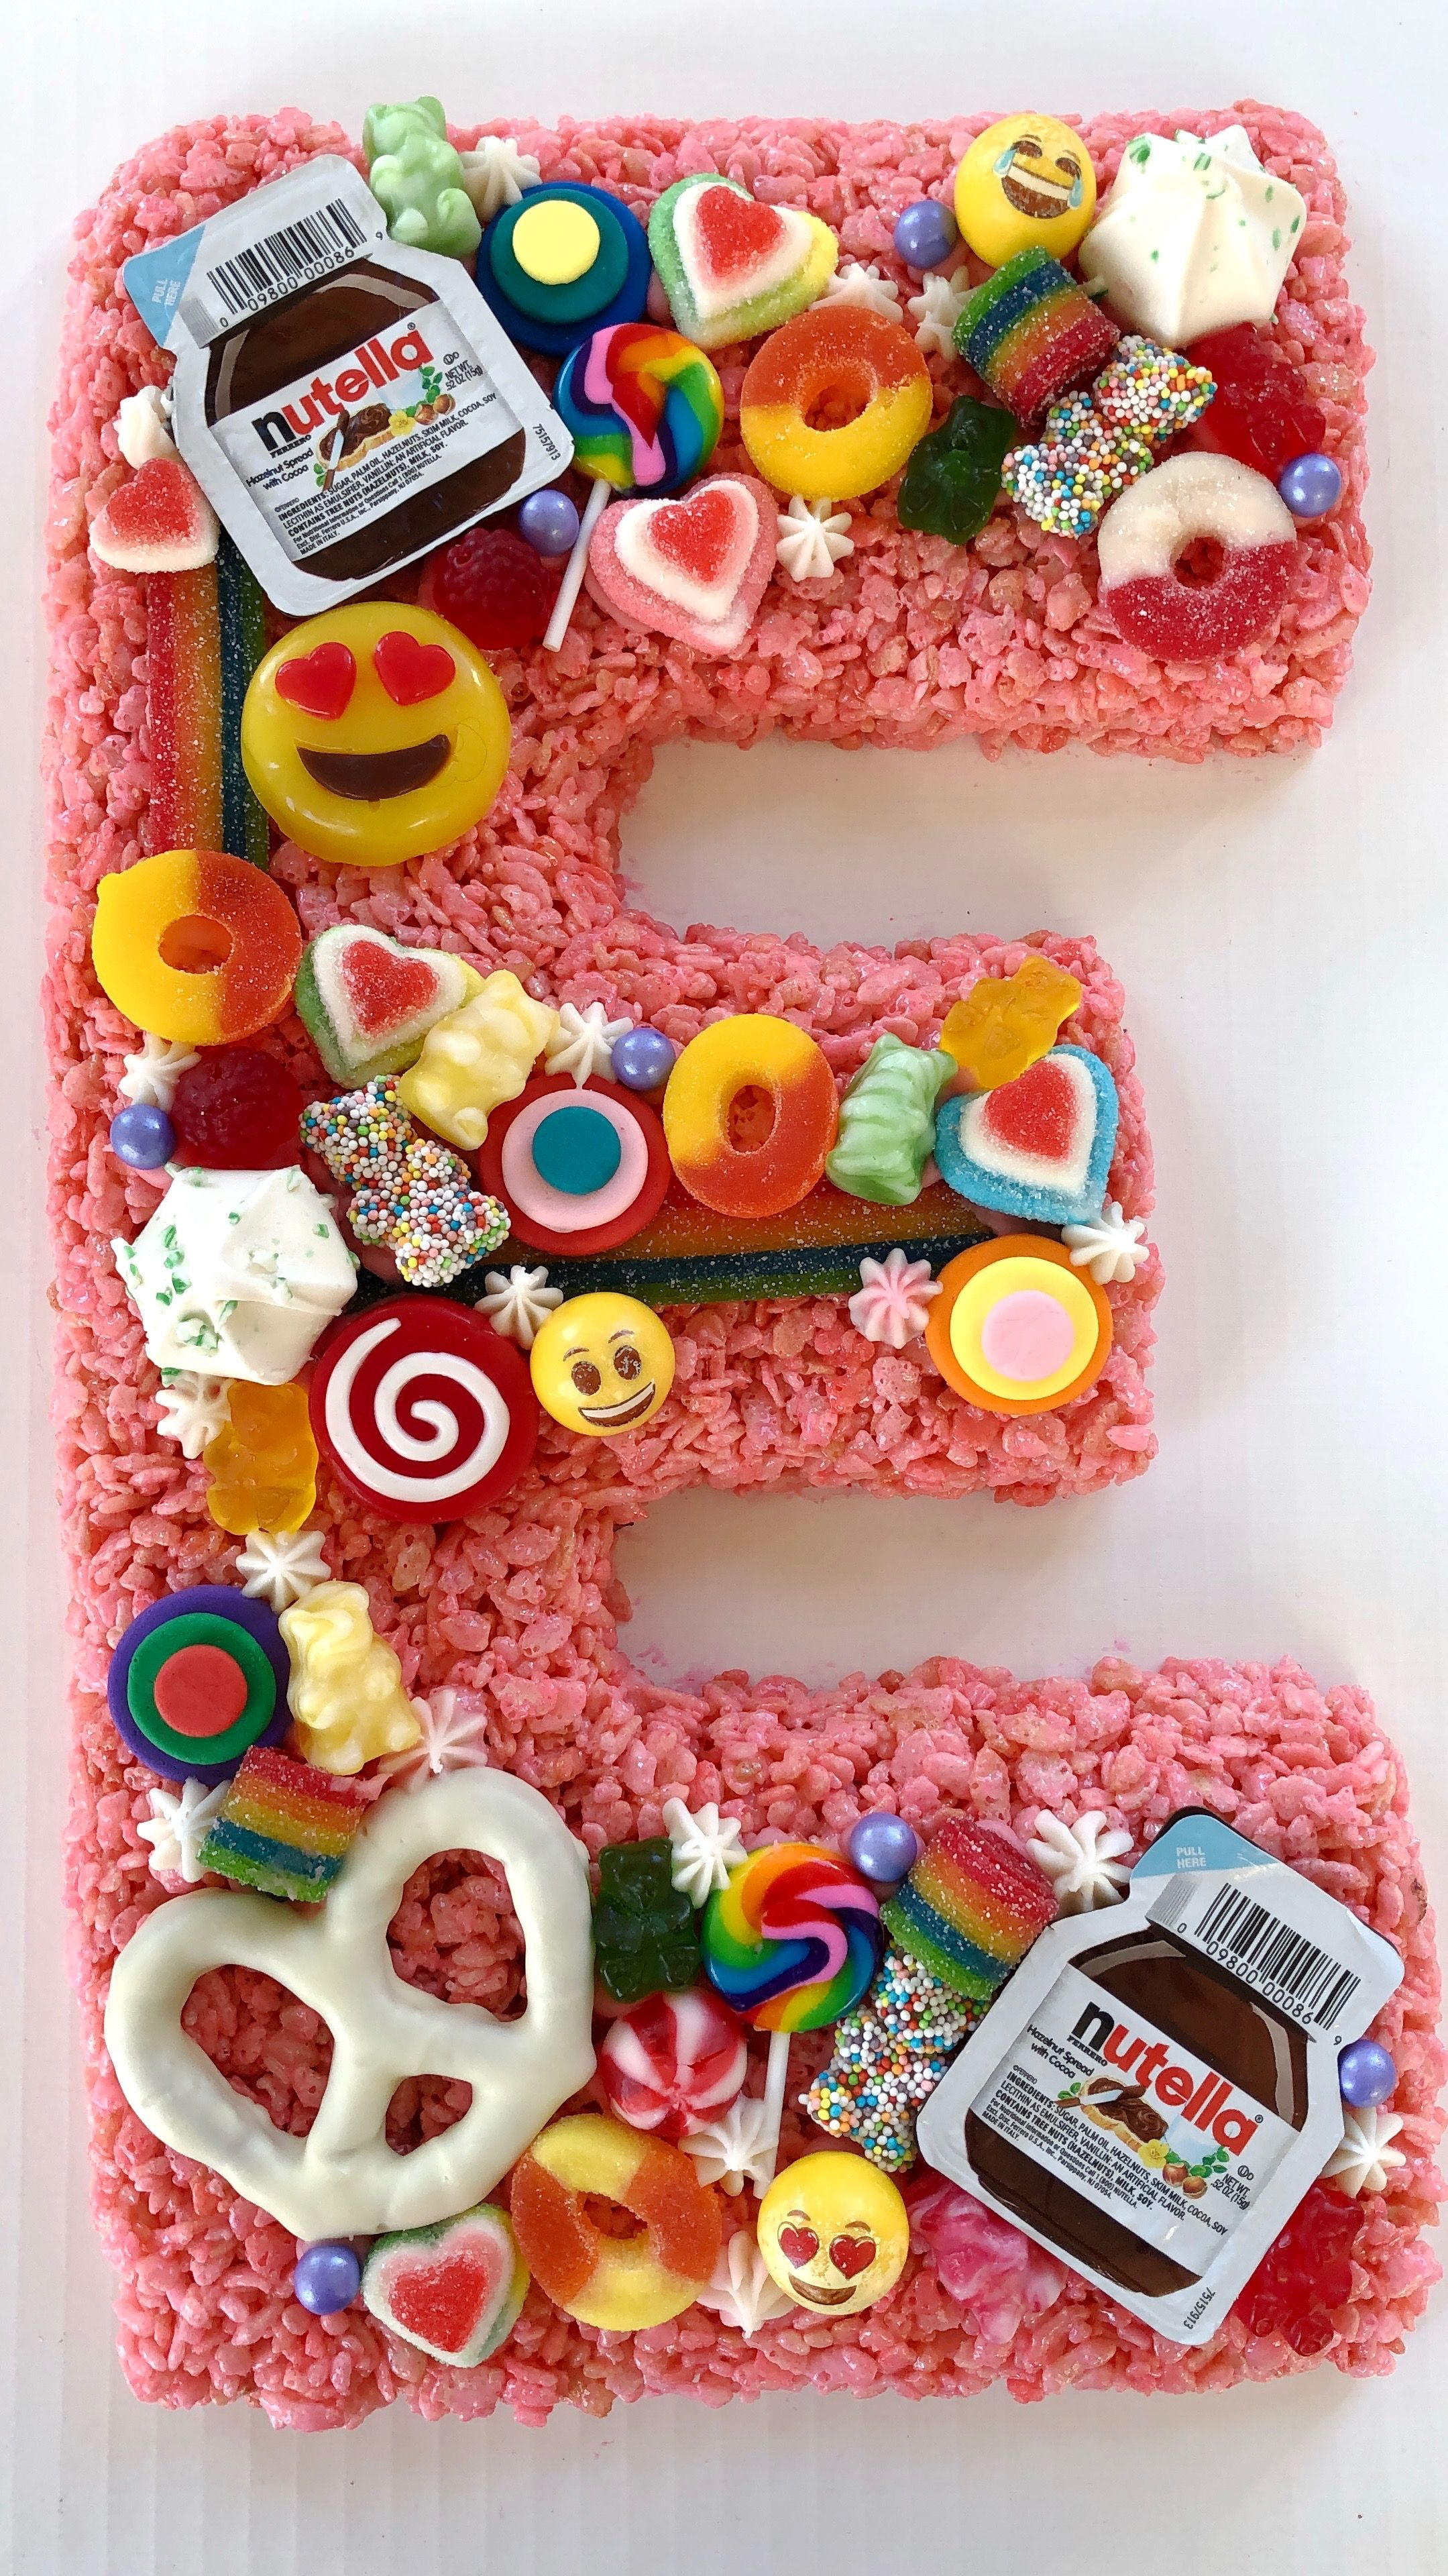 Rice Krispie Cake Covered In Candies Emojis And Nutella From